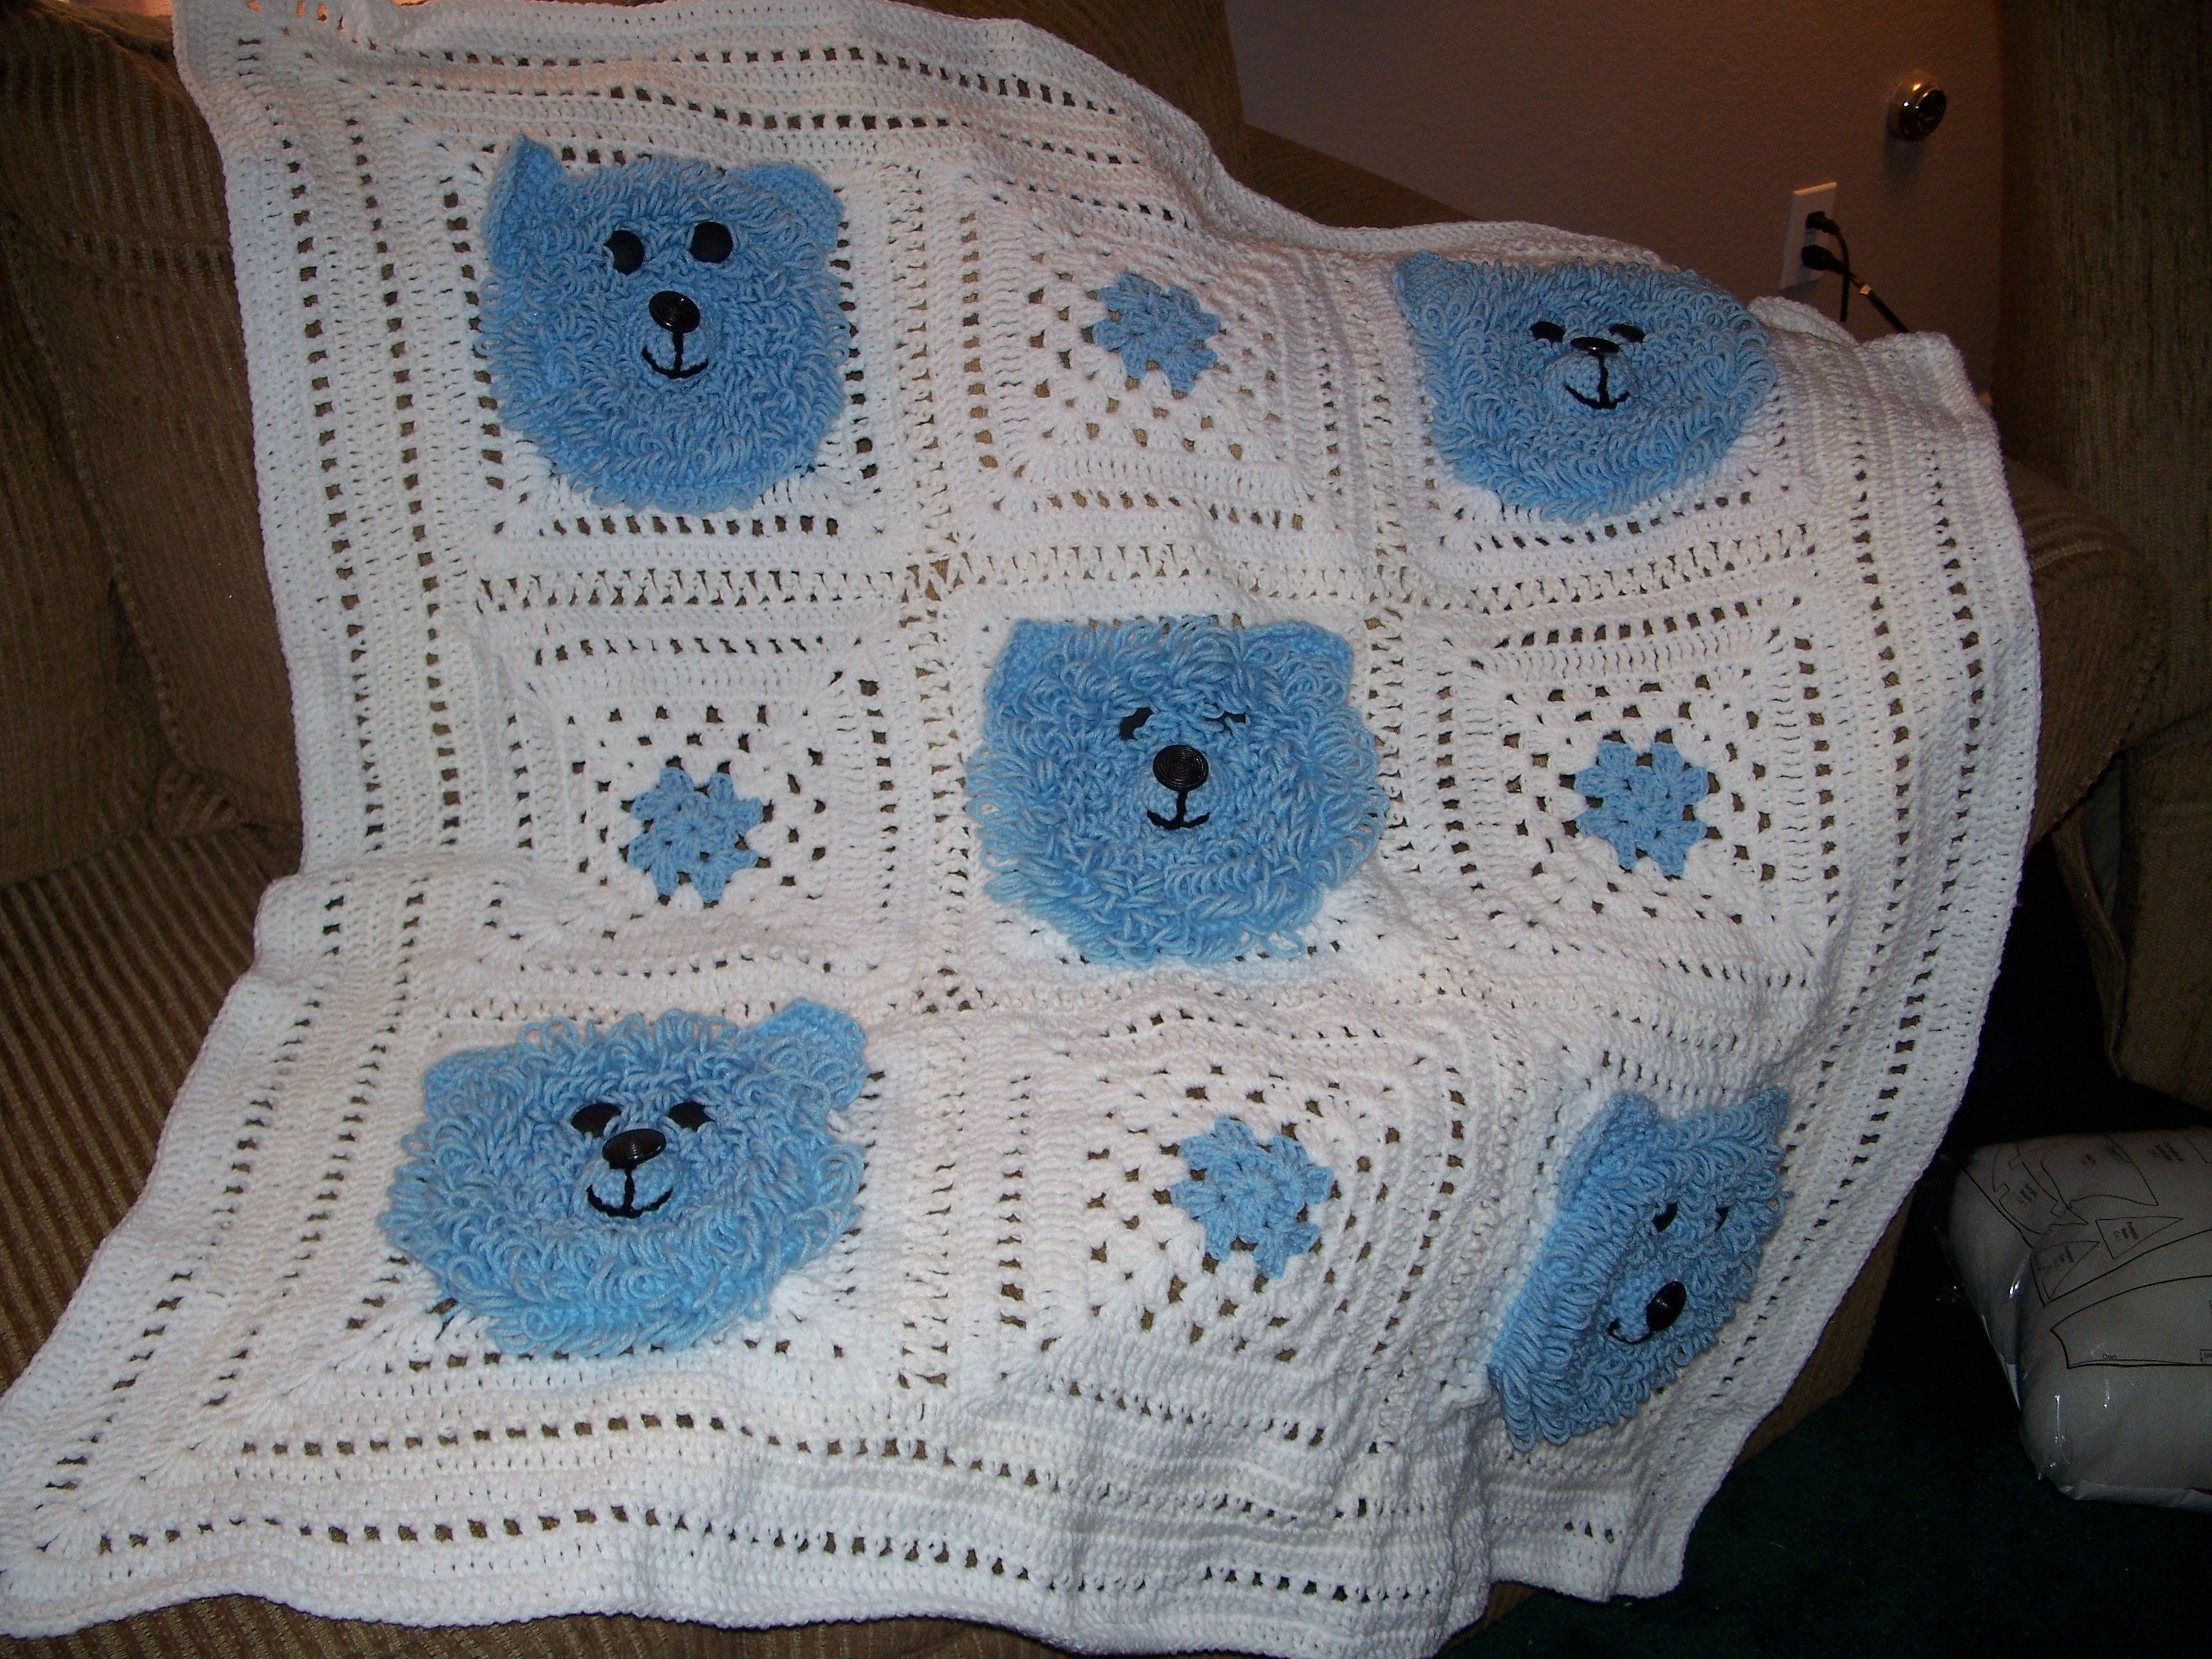 Free Teddy Bear Filet Crochet Afghan Pattern : CROCHET TEDDY BEAR AFGHAN PATTERN Crochet Projects